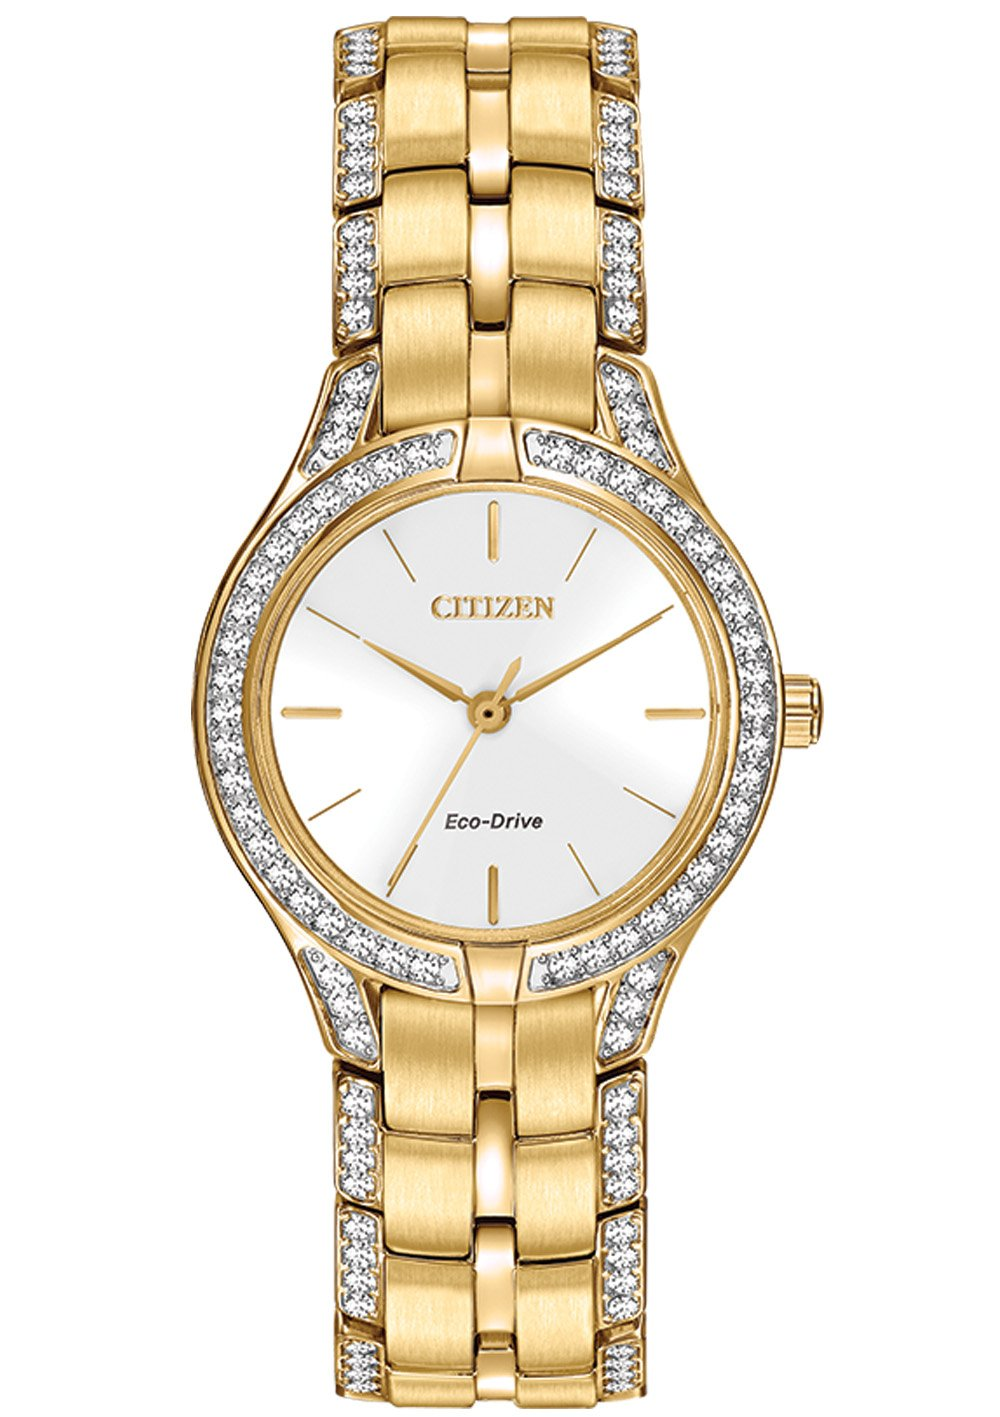 Citizen Eco-Drive Silhouette Crystal Women's Watch FE2062-58A